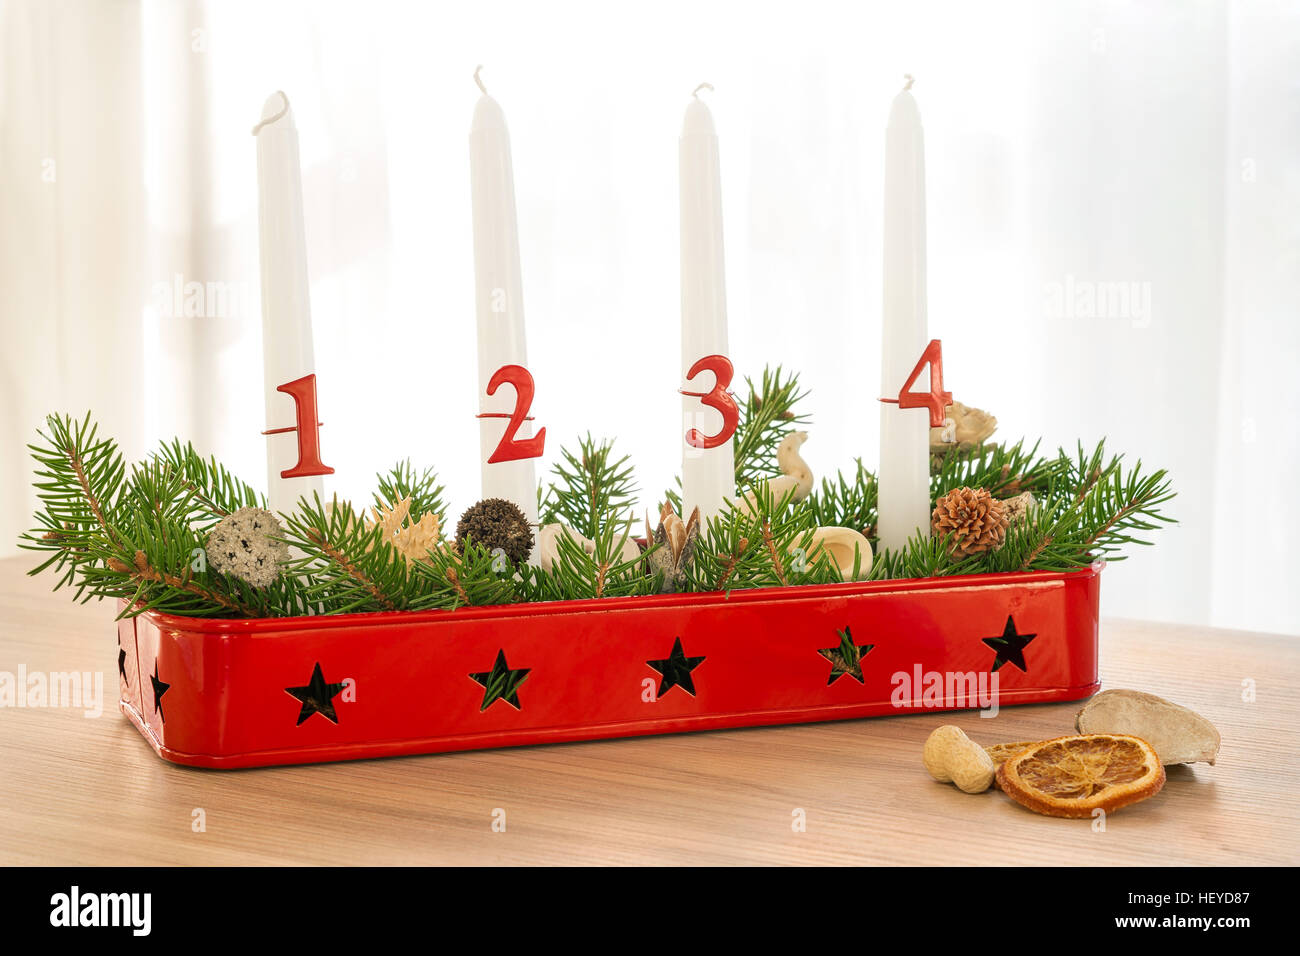 Full Christmas advent wreath with decoration on table - Stock Image